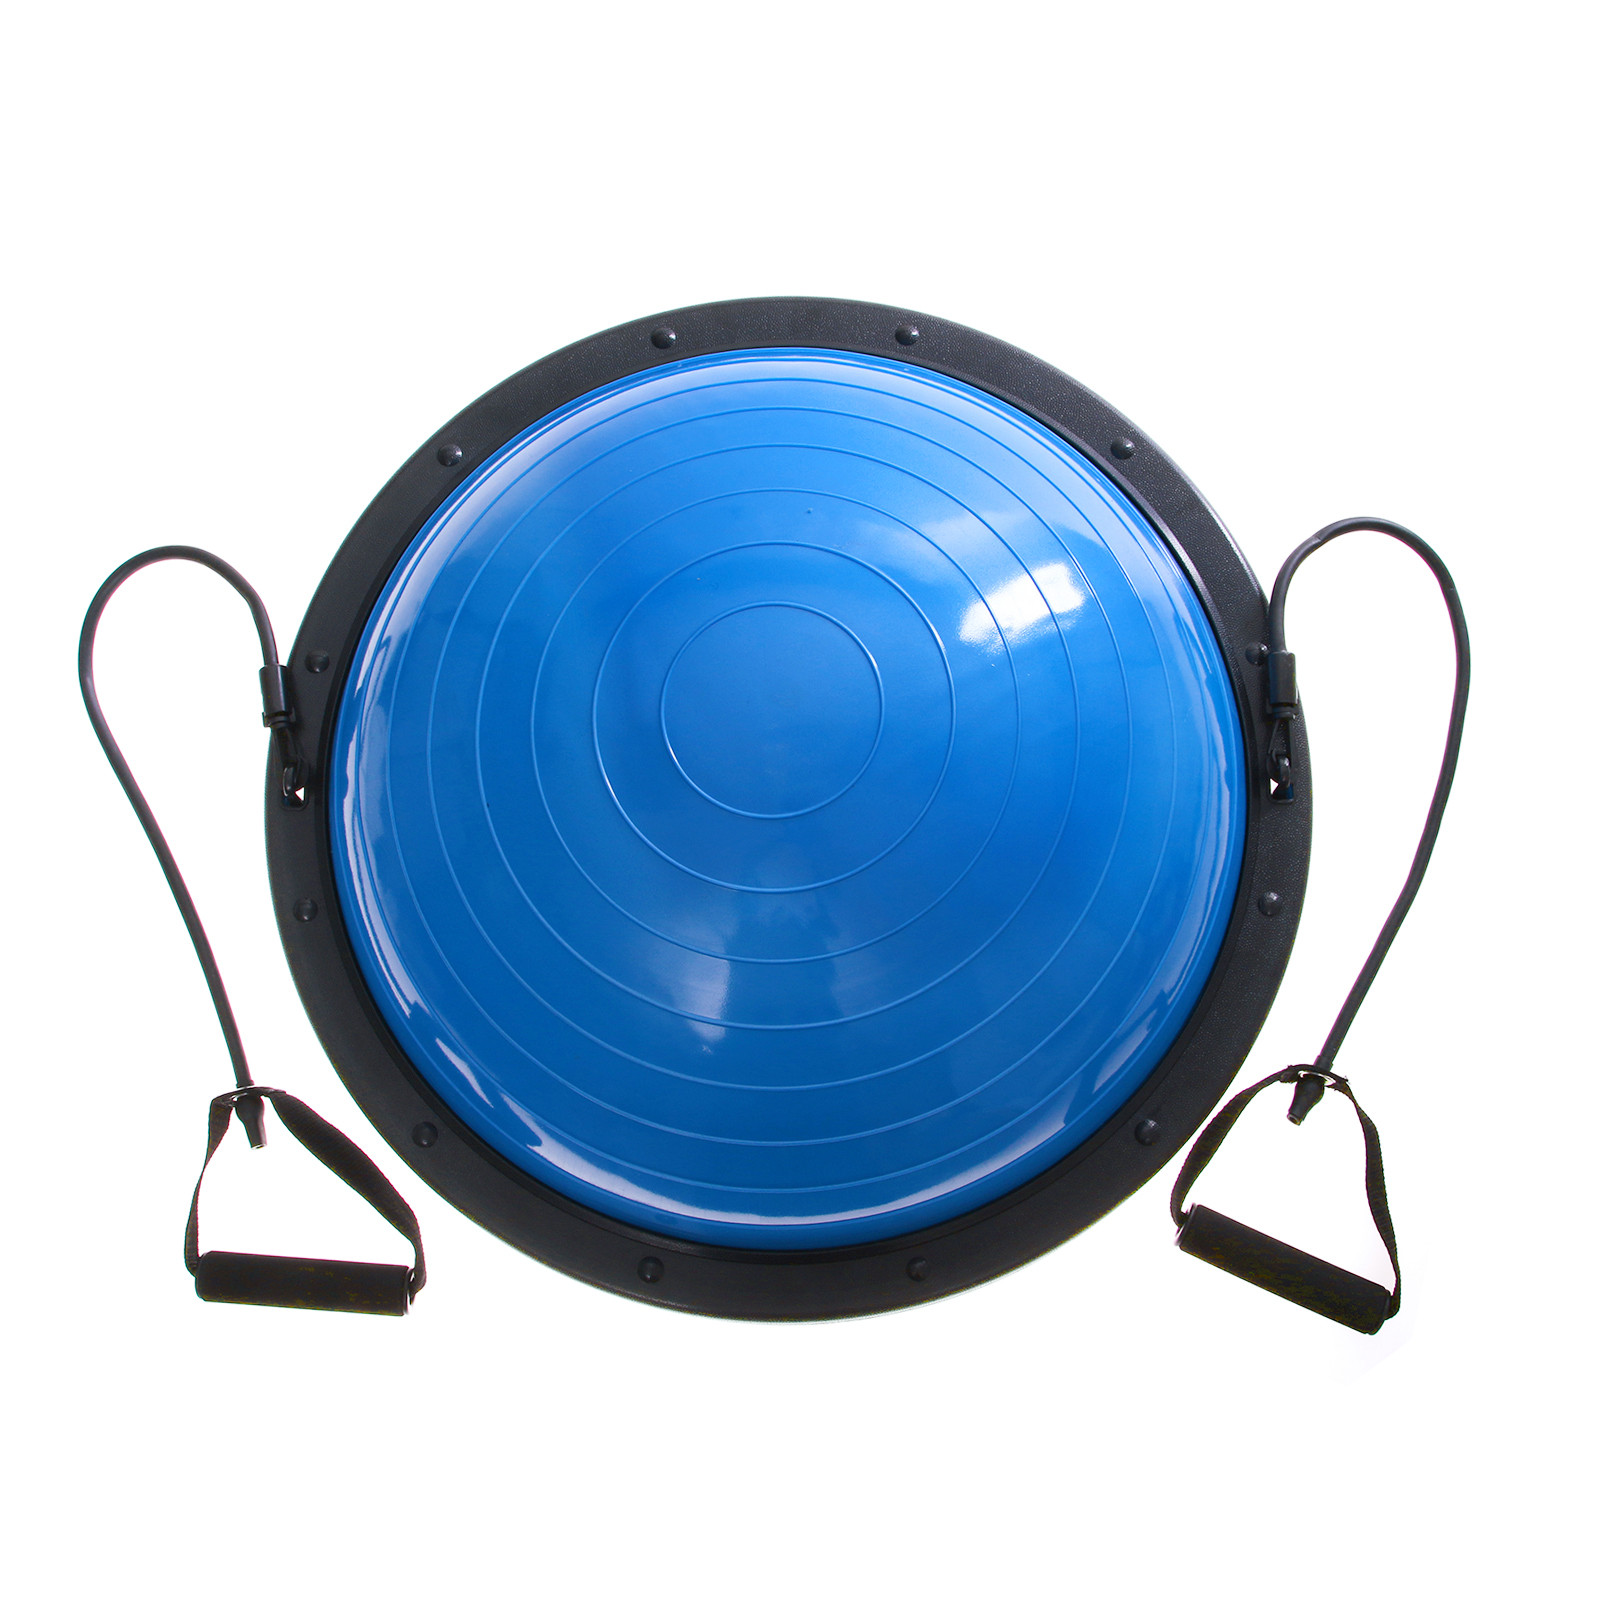 Bosu Ball Exercises For Athletes: Bosu Trainer Balance Ball Yoga Gym Exercise Fitness Core